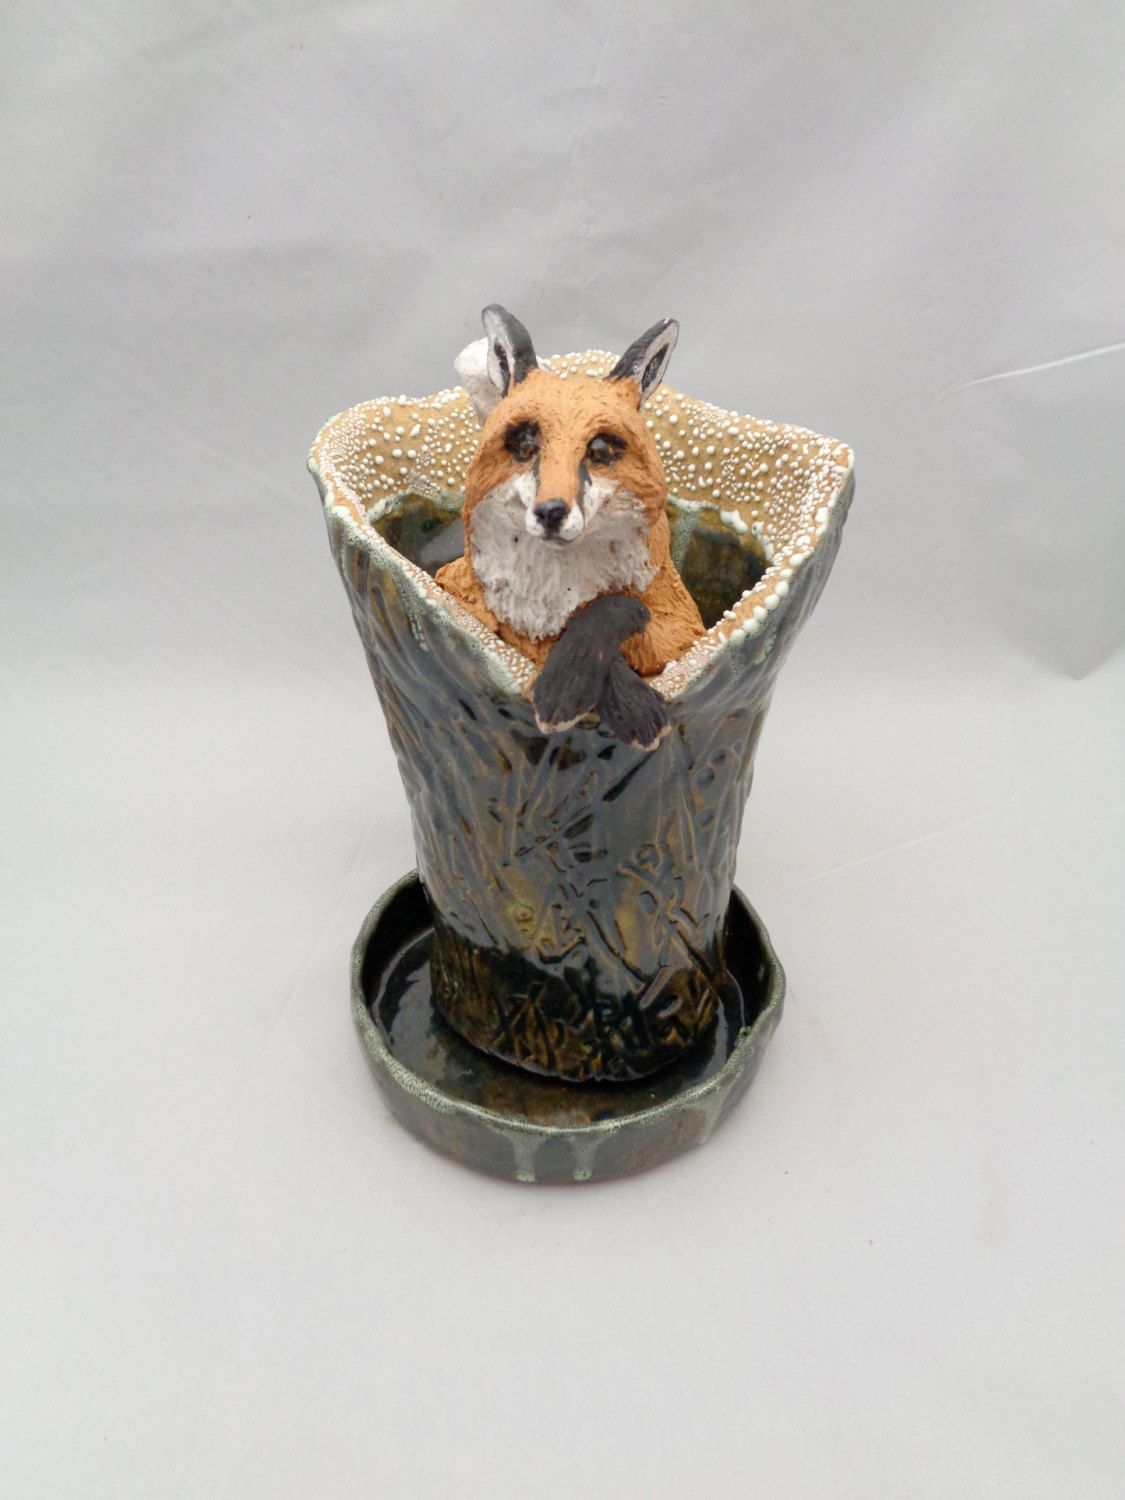 Foxy fox ceramic vase by menageriem on etsy vases with faces foxy fox ceramic vase by menageriem on etsy reviewsmspy